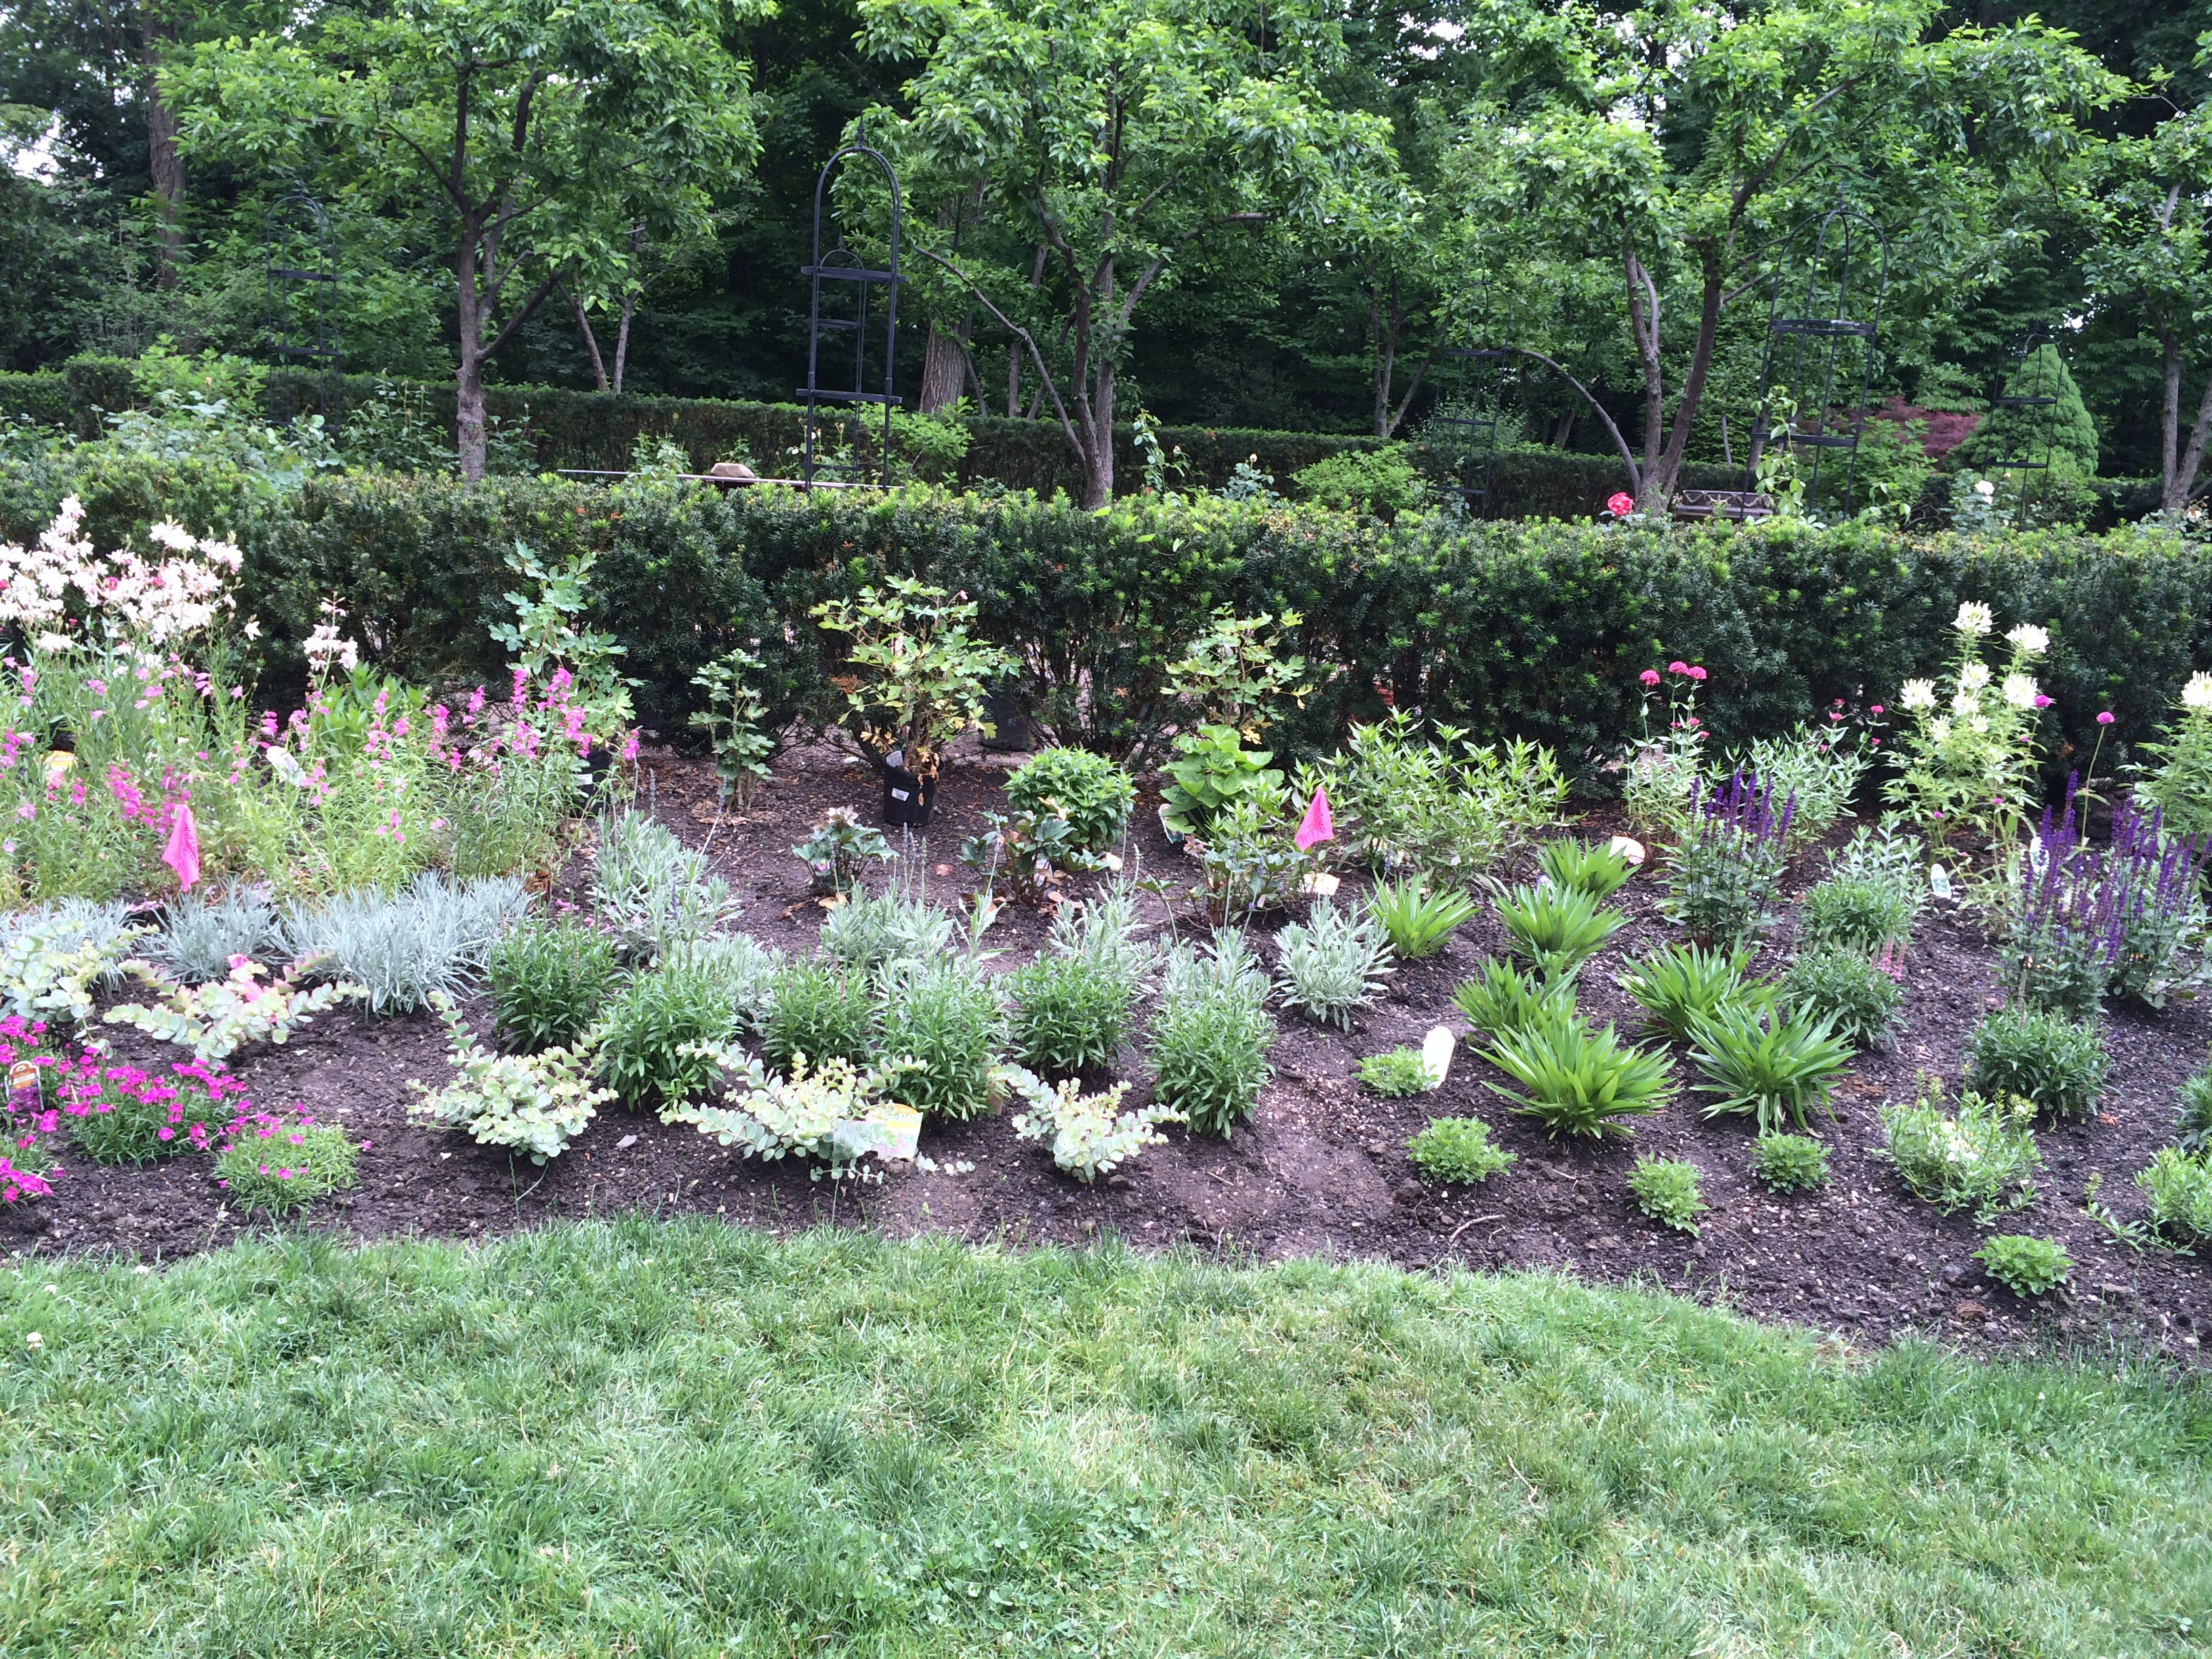 Redesigning a perennial garden is fun bobbie 39 s green thumb for Perennial garden design